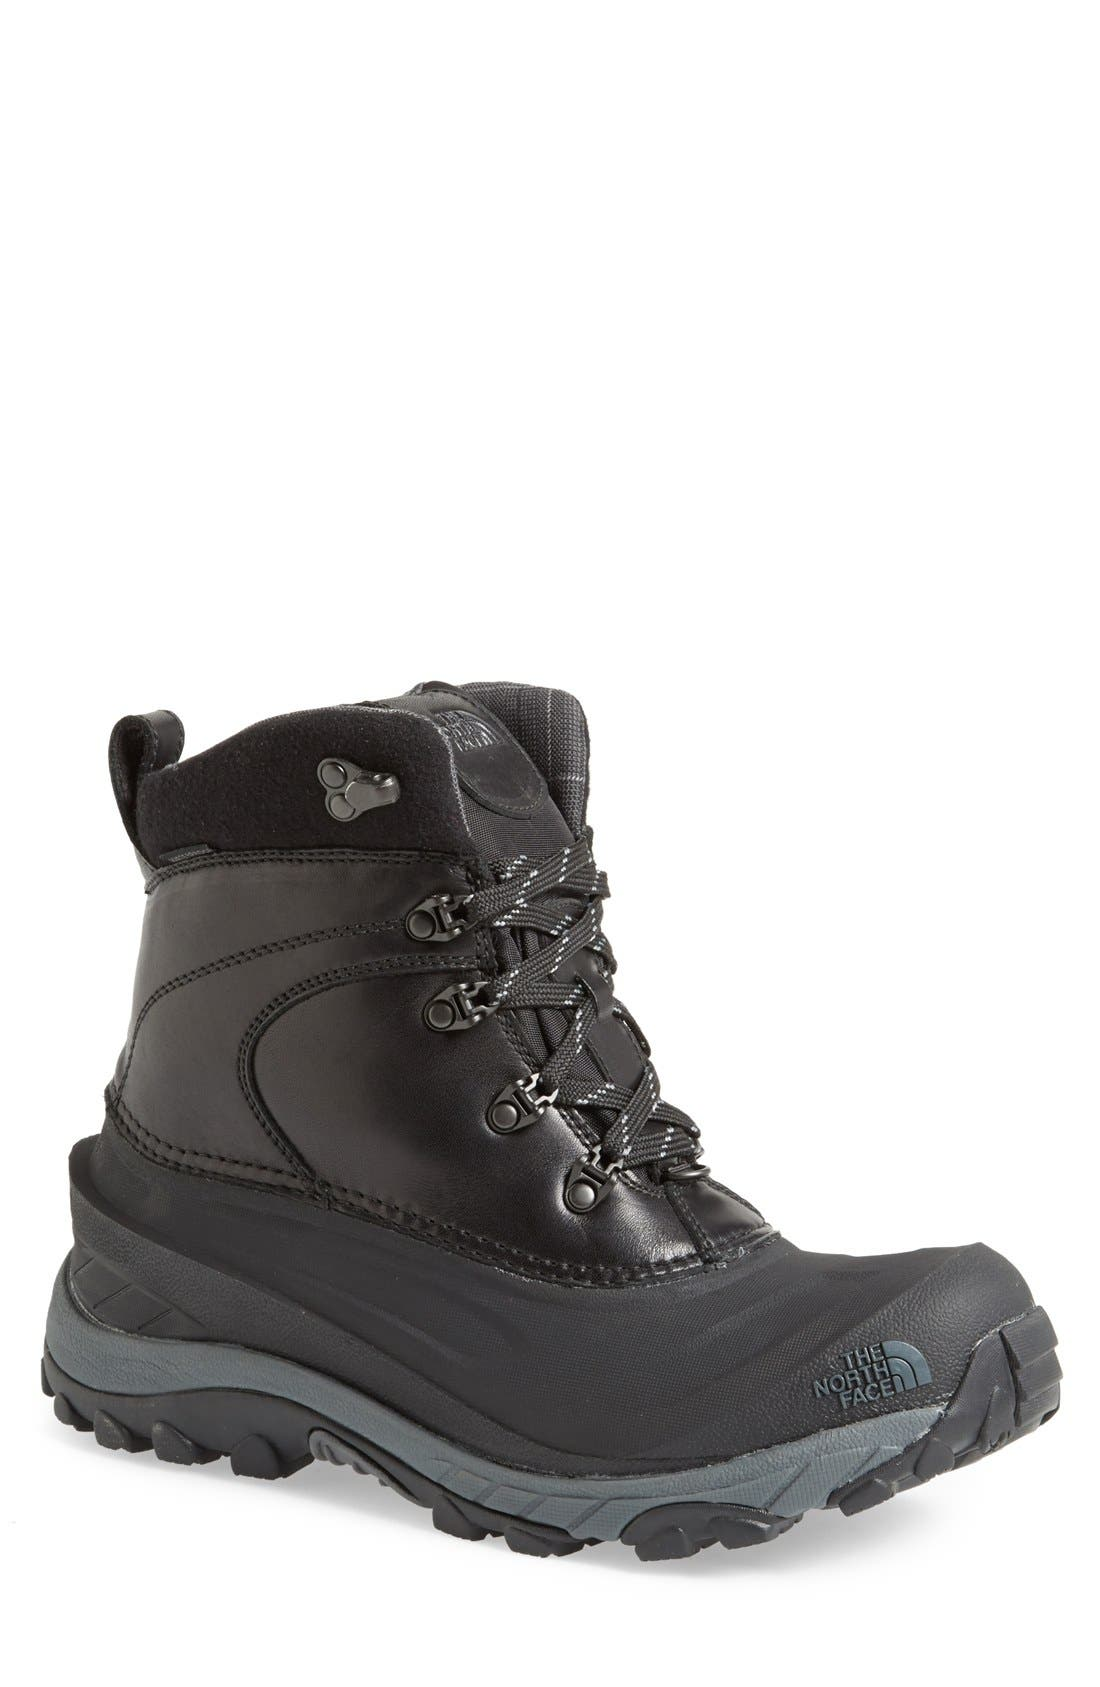 'Chilkat II Luxe' Snow Boot,                             Main thumbnail 1, color,                             001